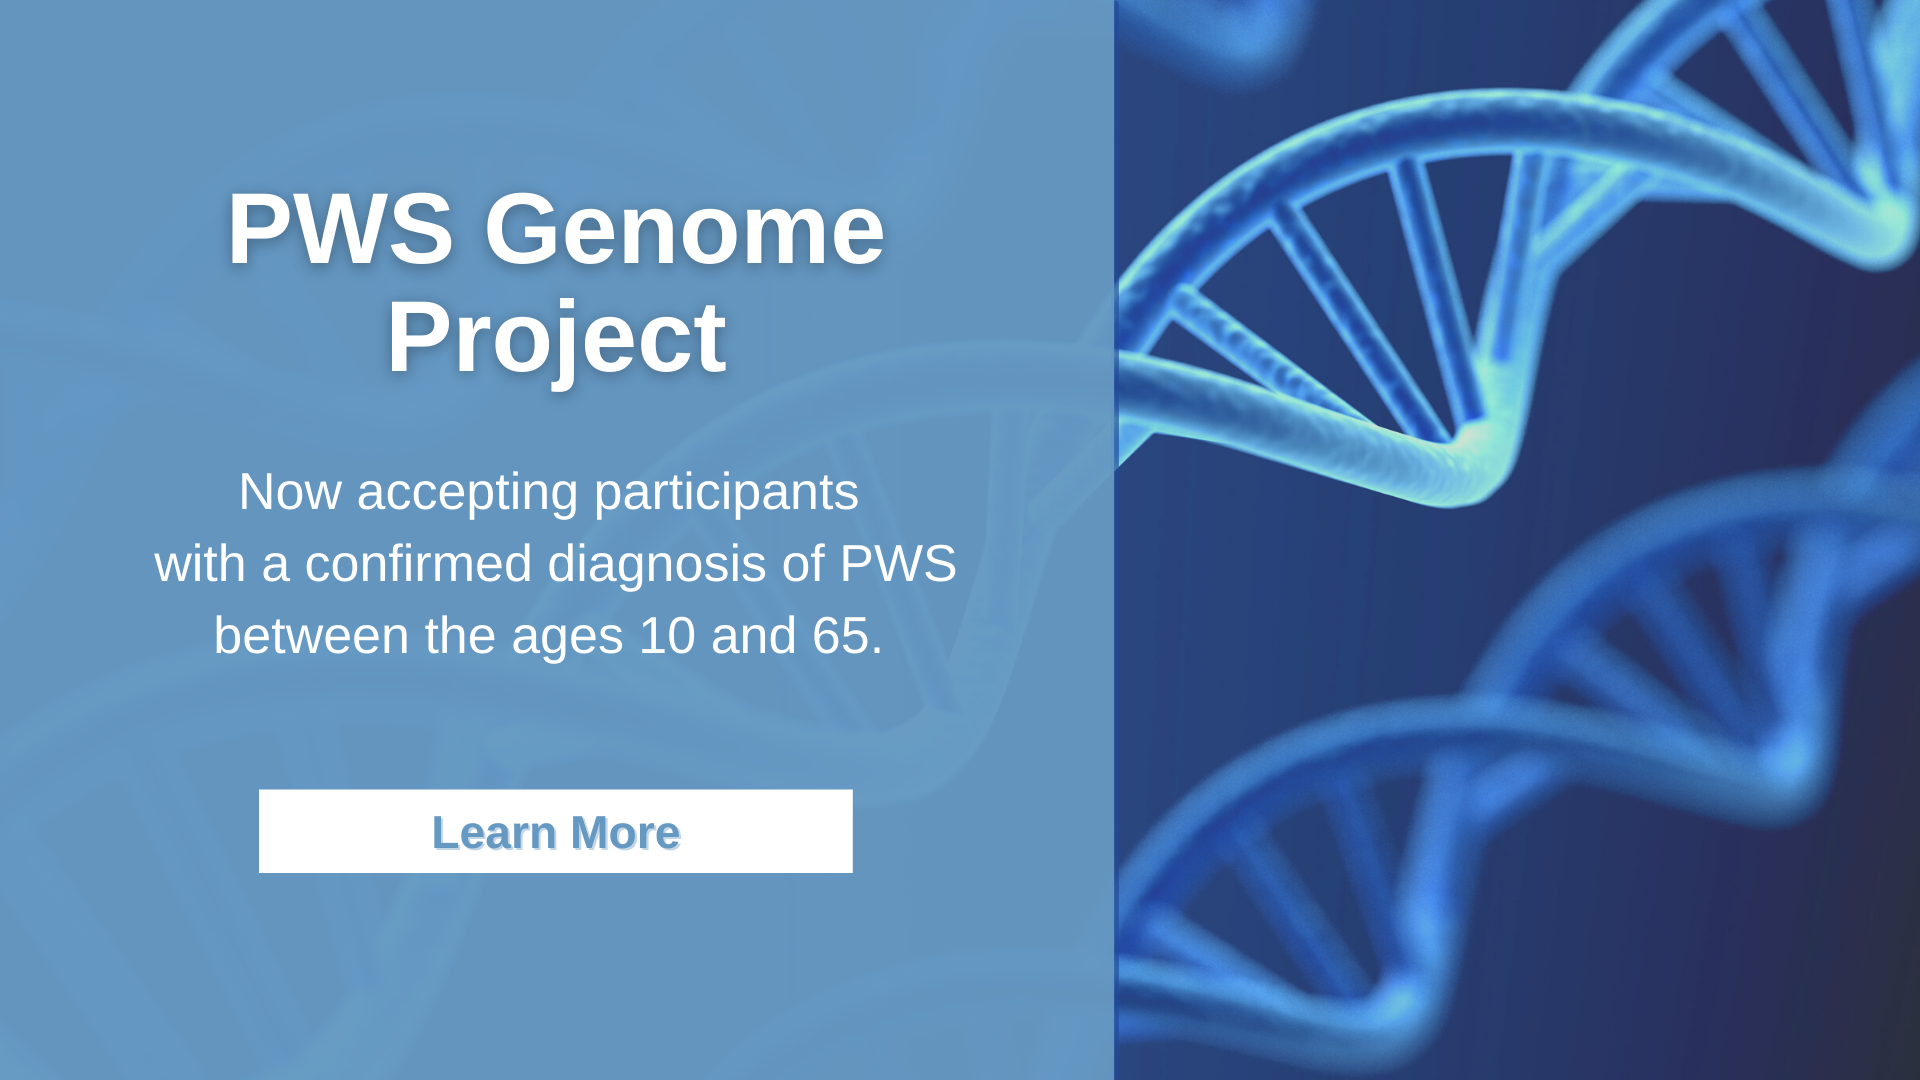 FPWR Launches First of Kind PWS Genome Project